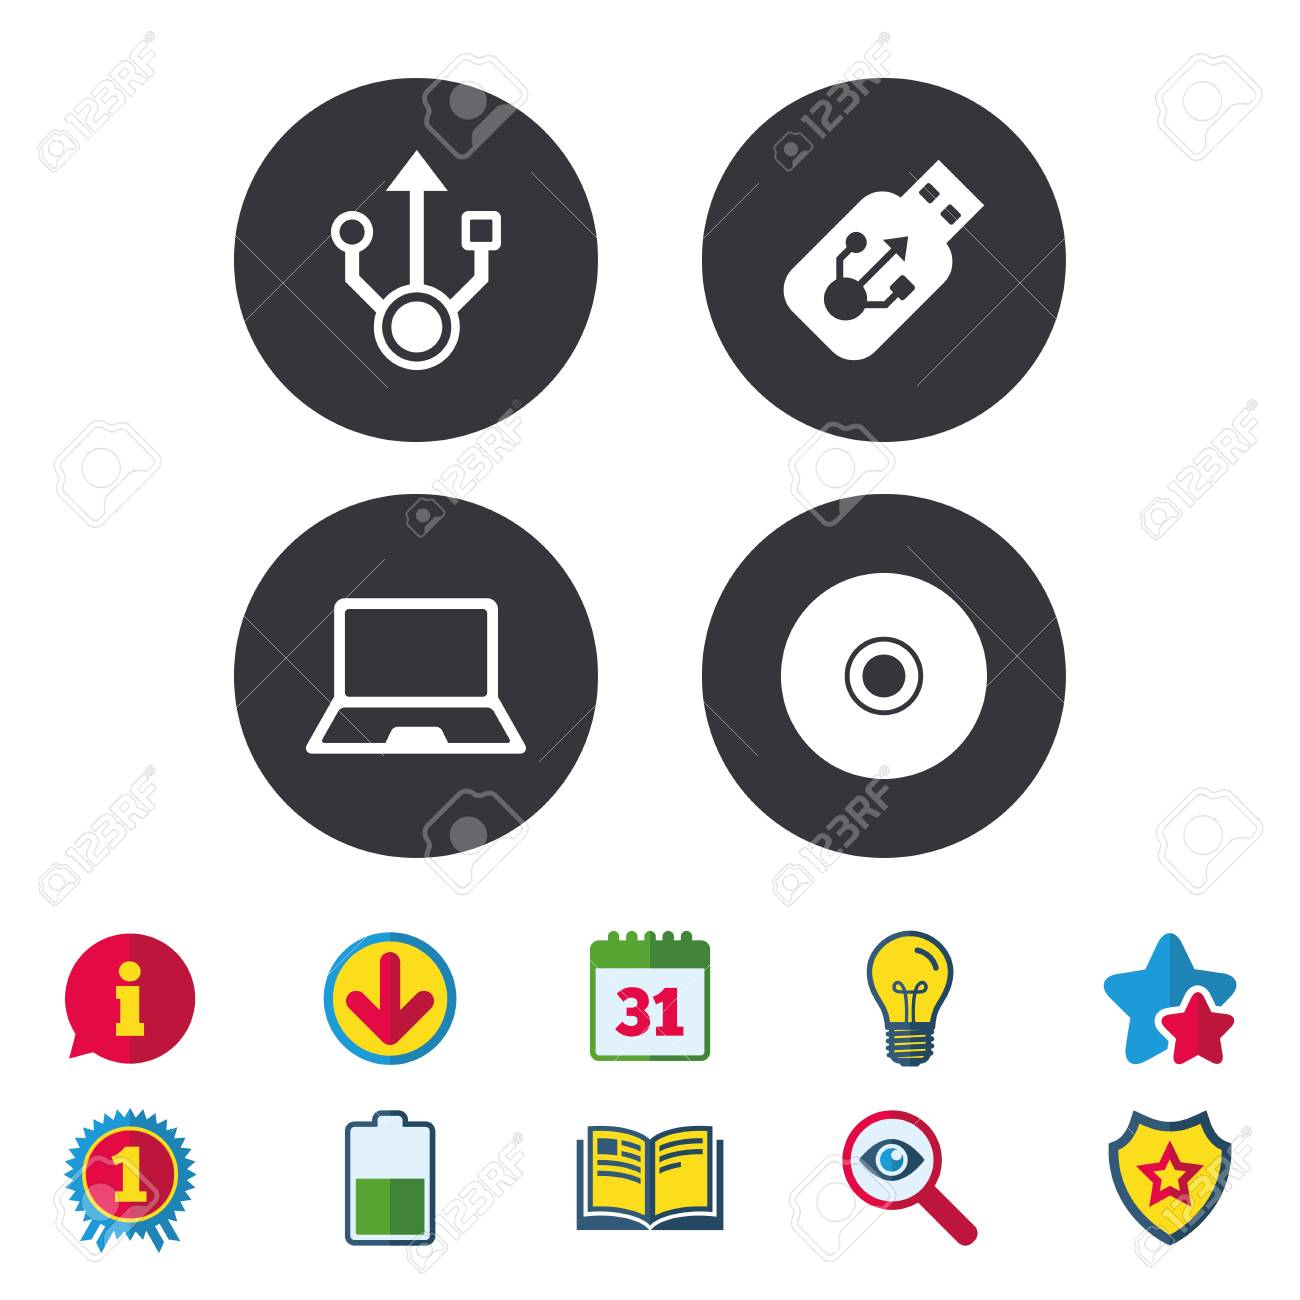 Usb flash drive icons  Notebook or Laptop pc symbols  CD or DVD